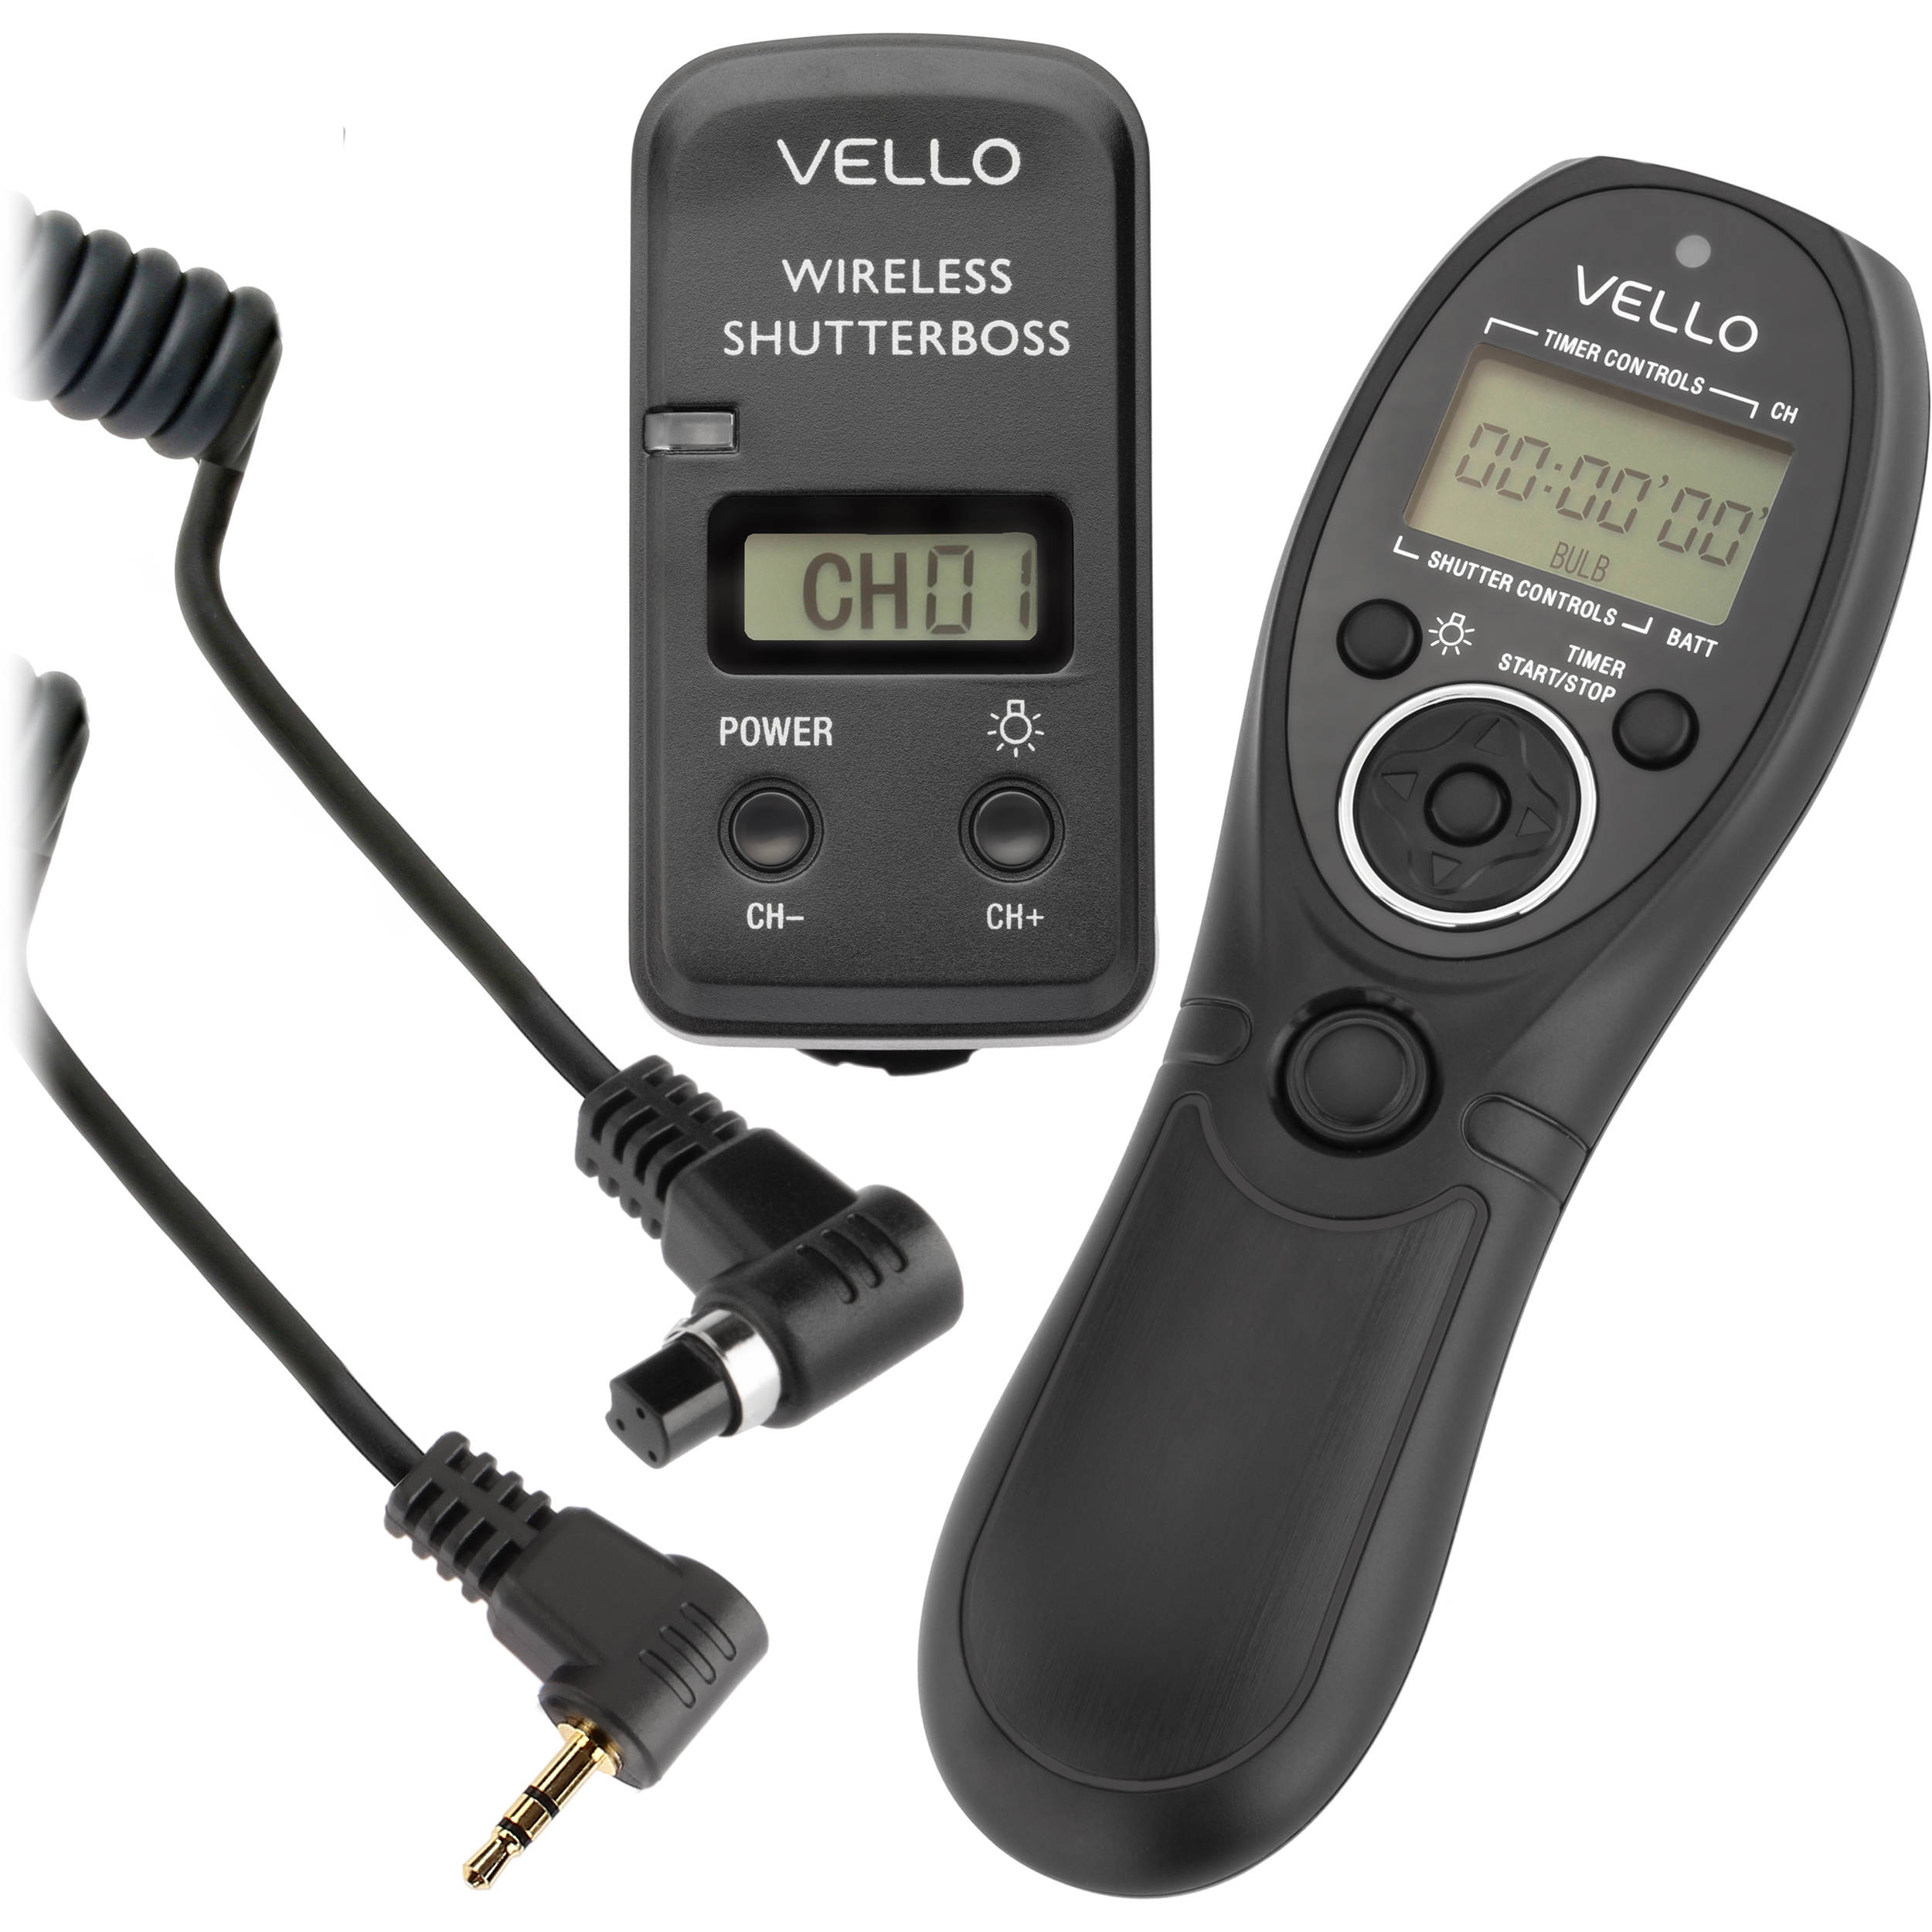 Vello Wireless Shutterboss Iii Remote Switch Rcw 3 C Bh Photo Simple Rf Transmitter Circuit Simplest Fm X3cbx3etransmitterx3c B With Digital Timer For Select Canon Cameras